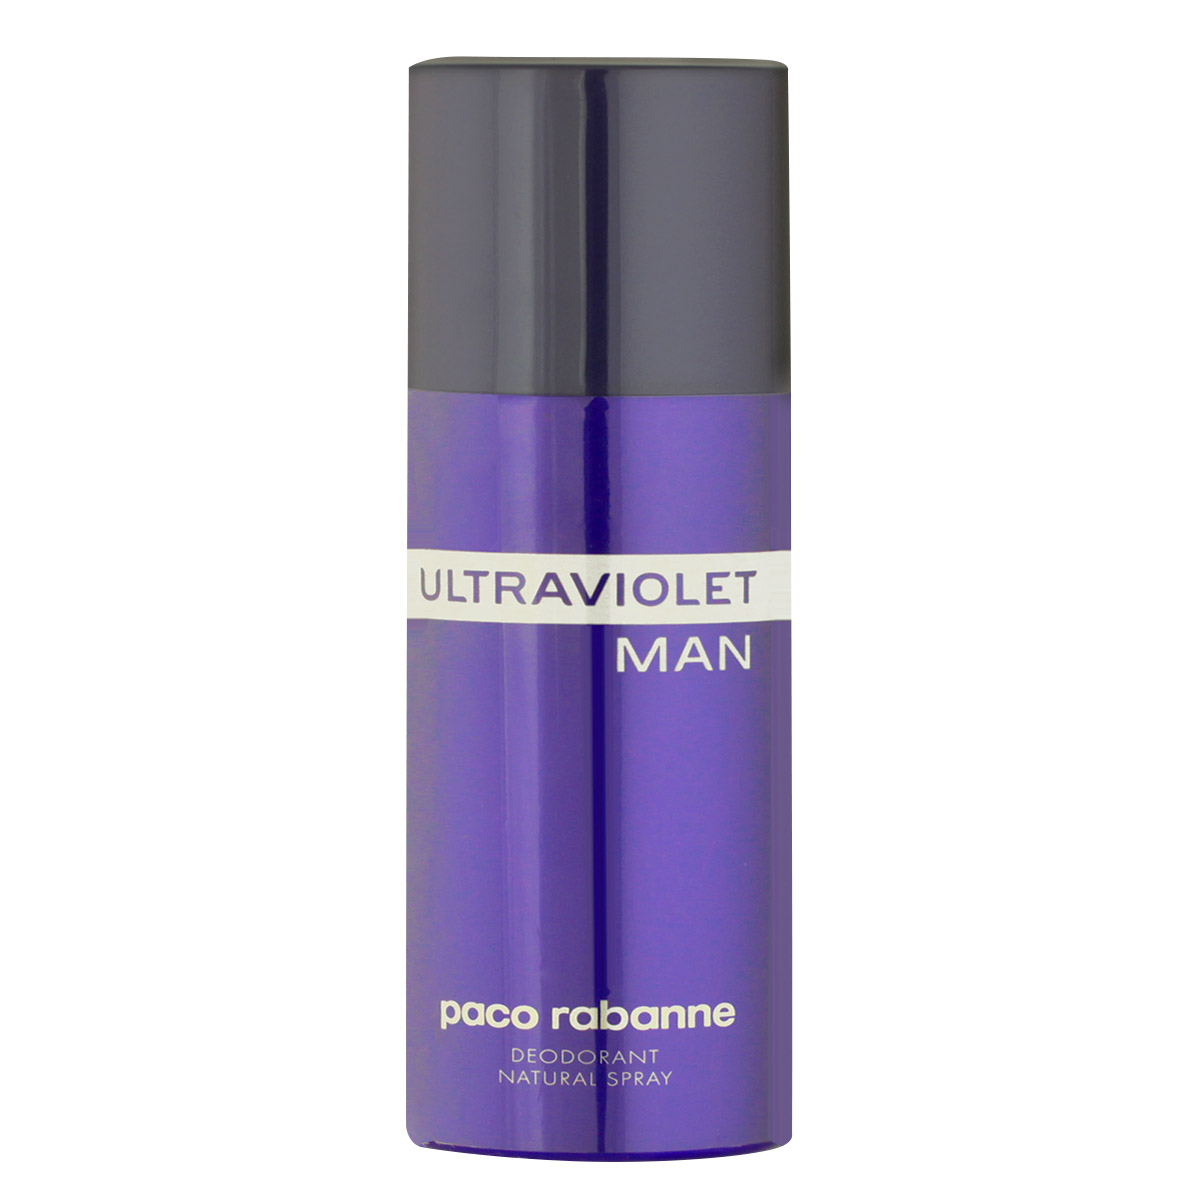 Paco Rabanne Ultraviolet Man DEO ve spreji 150 ml M